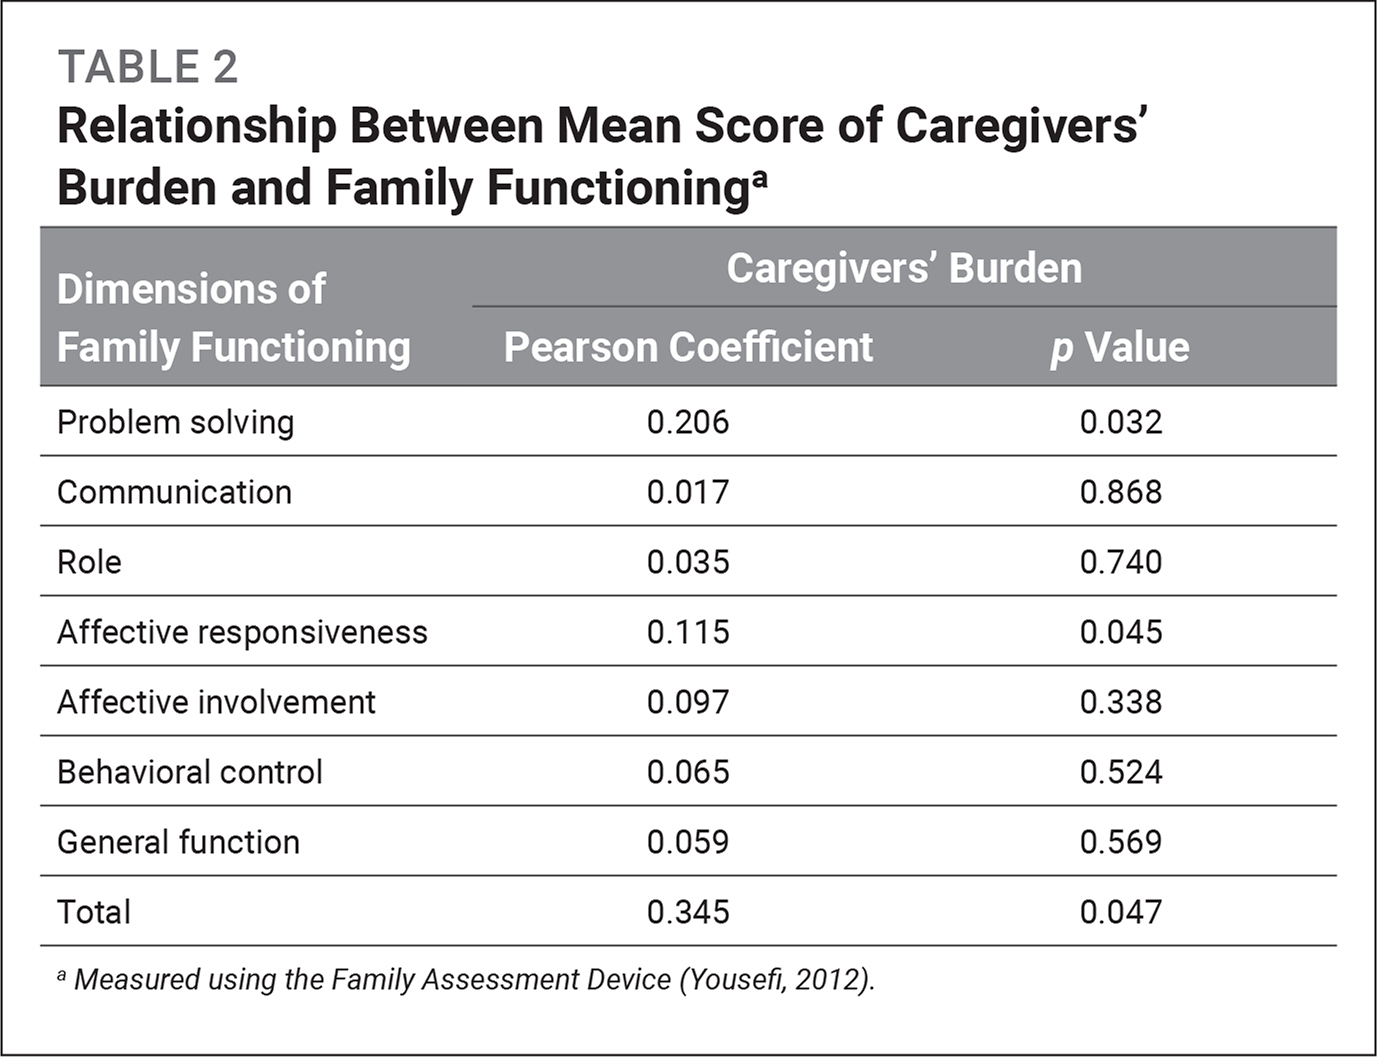 Relationship Between Mean Score of Caregivers' Burden and Family Functioninga